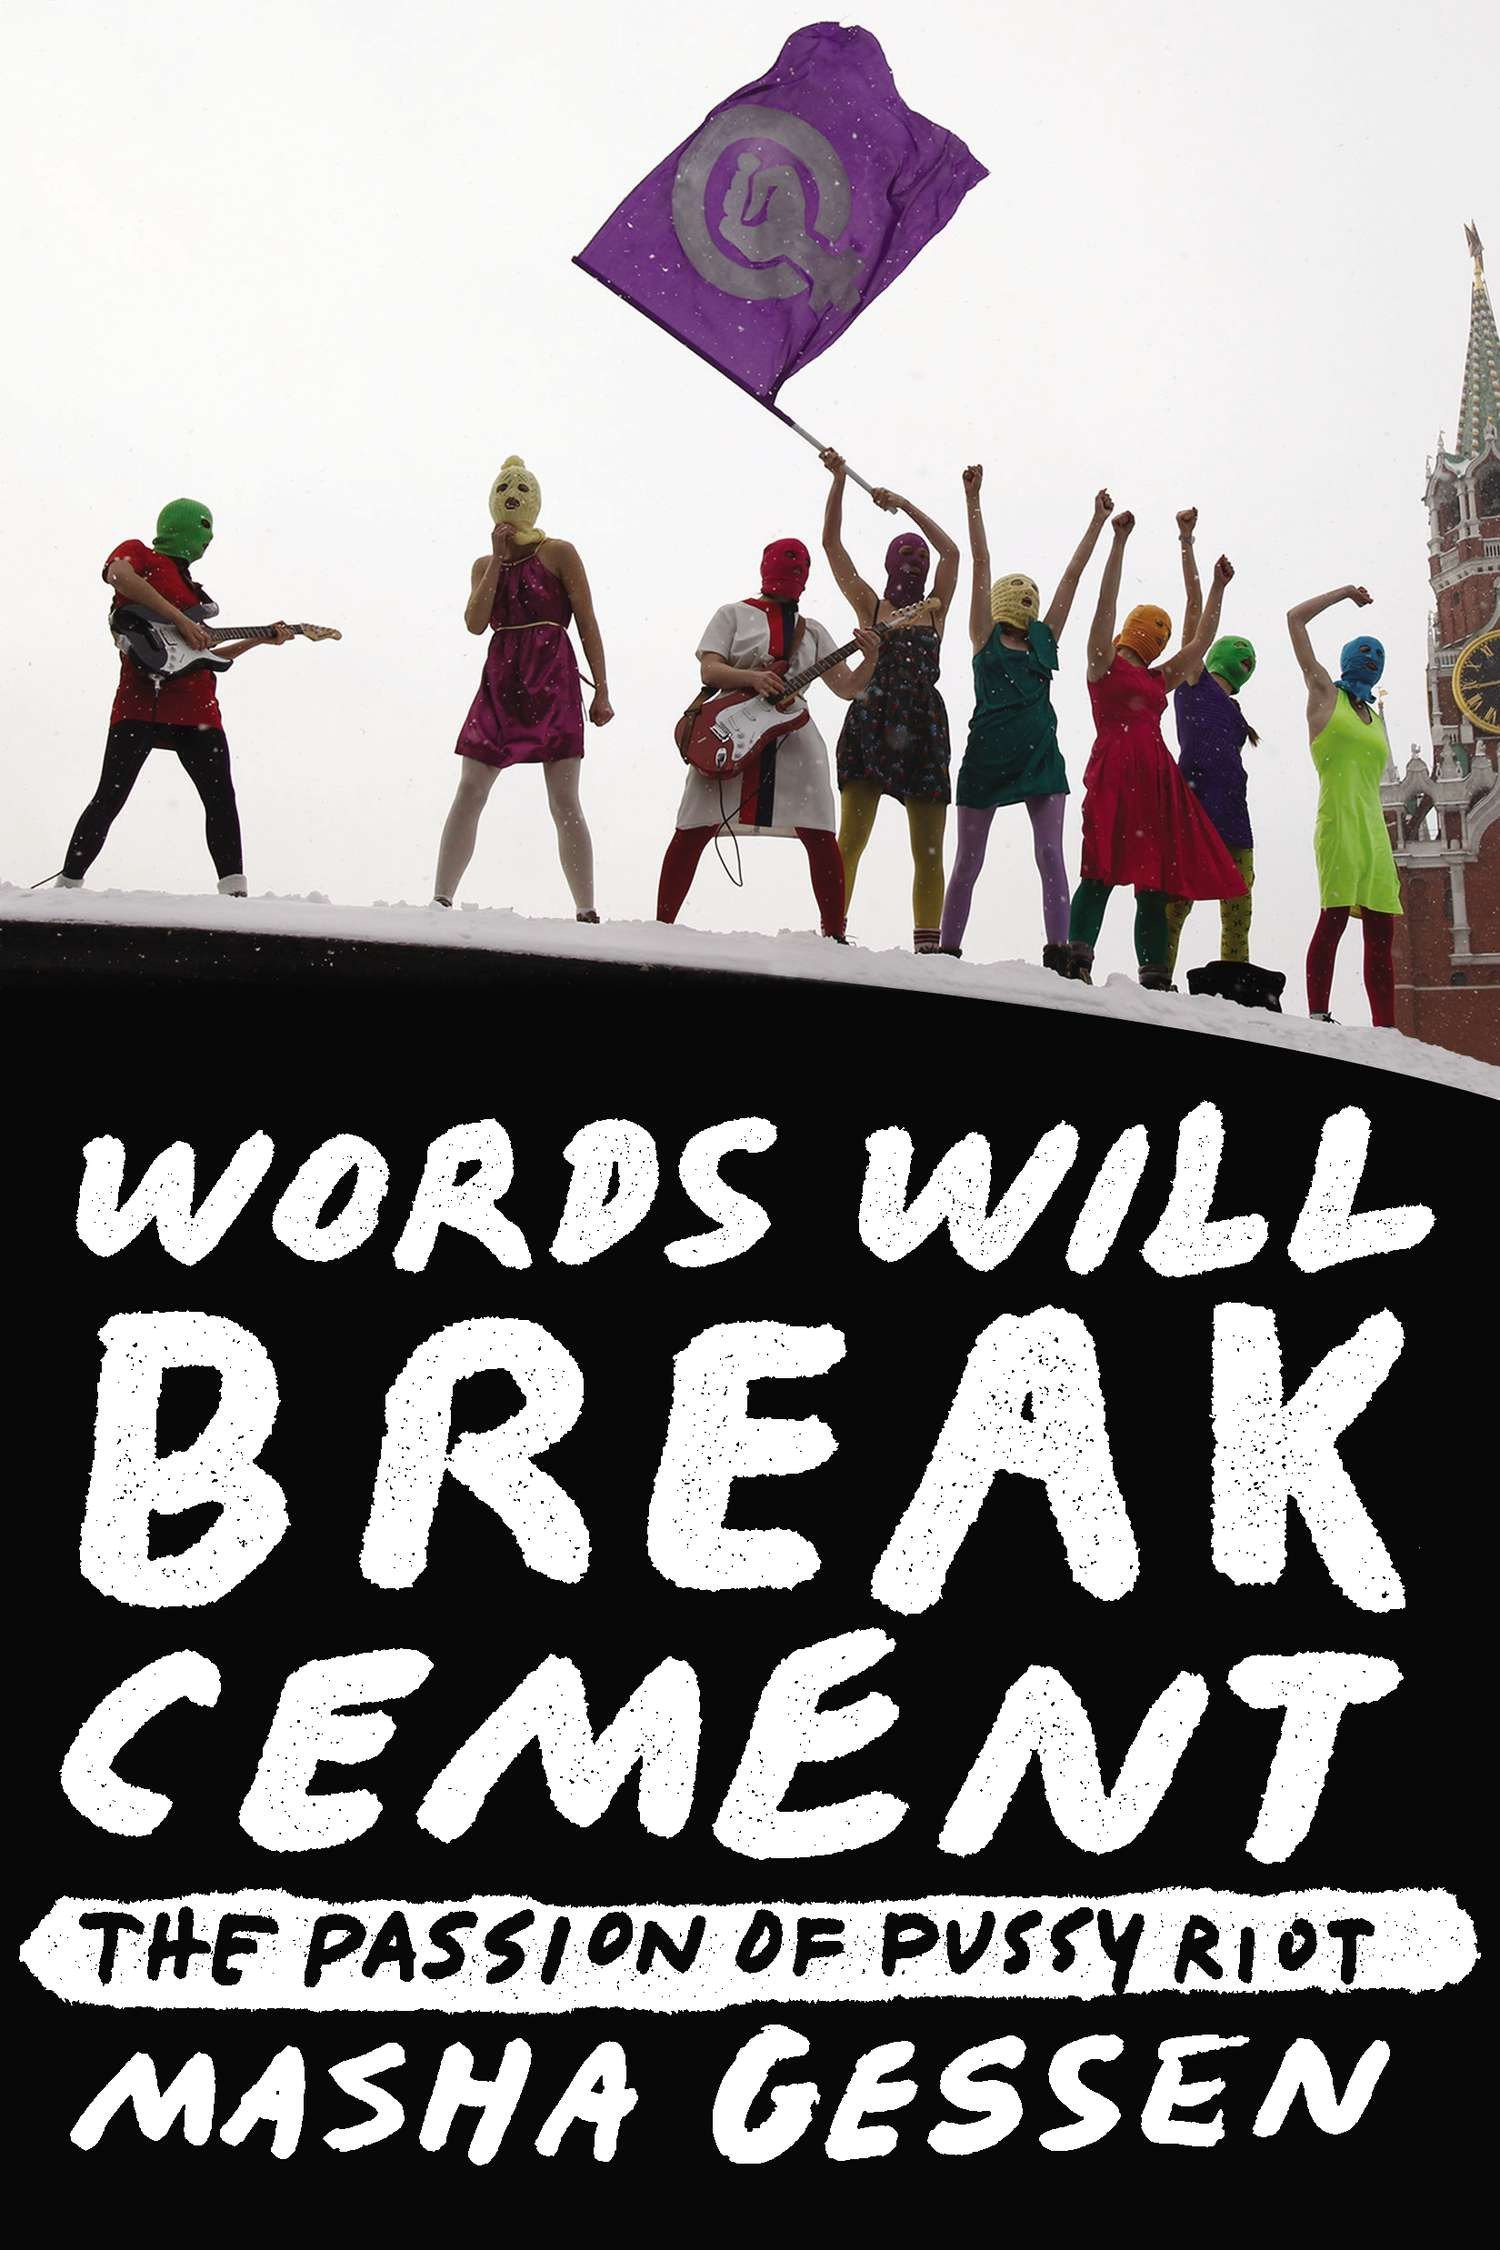 Words Will Break Cement: The Passion of Pussy Riot: Masha Gessen